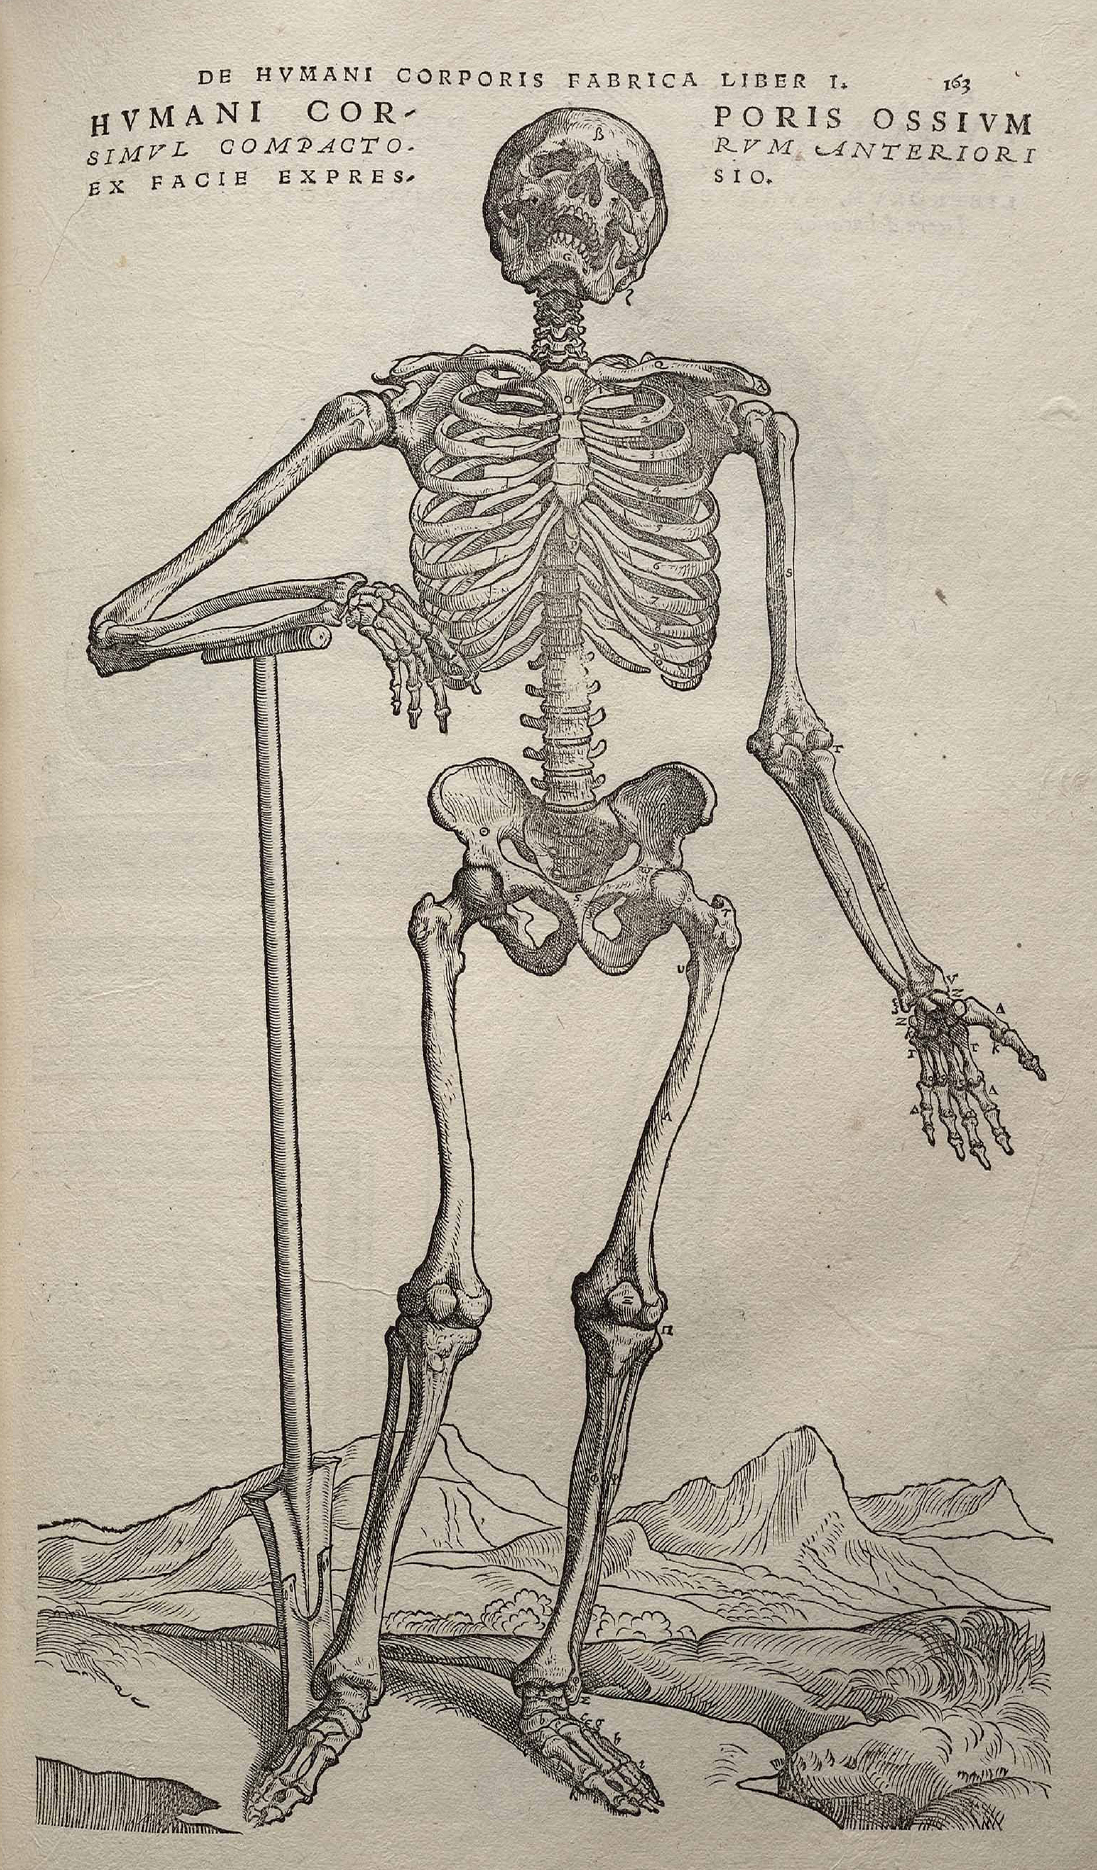 https://upload.wikimedia.org/wikipedia/commons/e/e6/Vesalius_Fabrica_p163.jpg